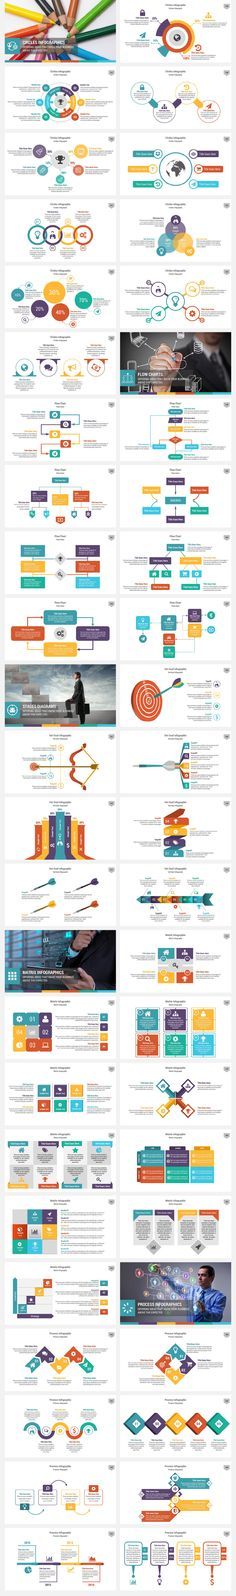 Check My Other PowerPoint Presentations Templates                         3 in 1 Summit PowerPoint Template Bundle This Bundle contains three ...